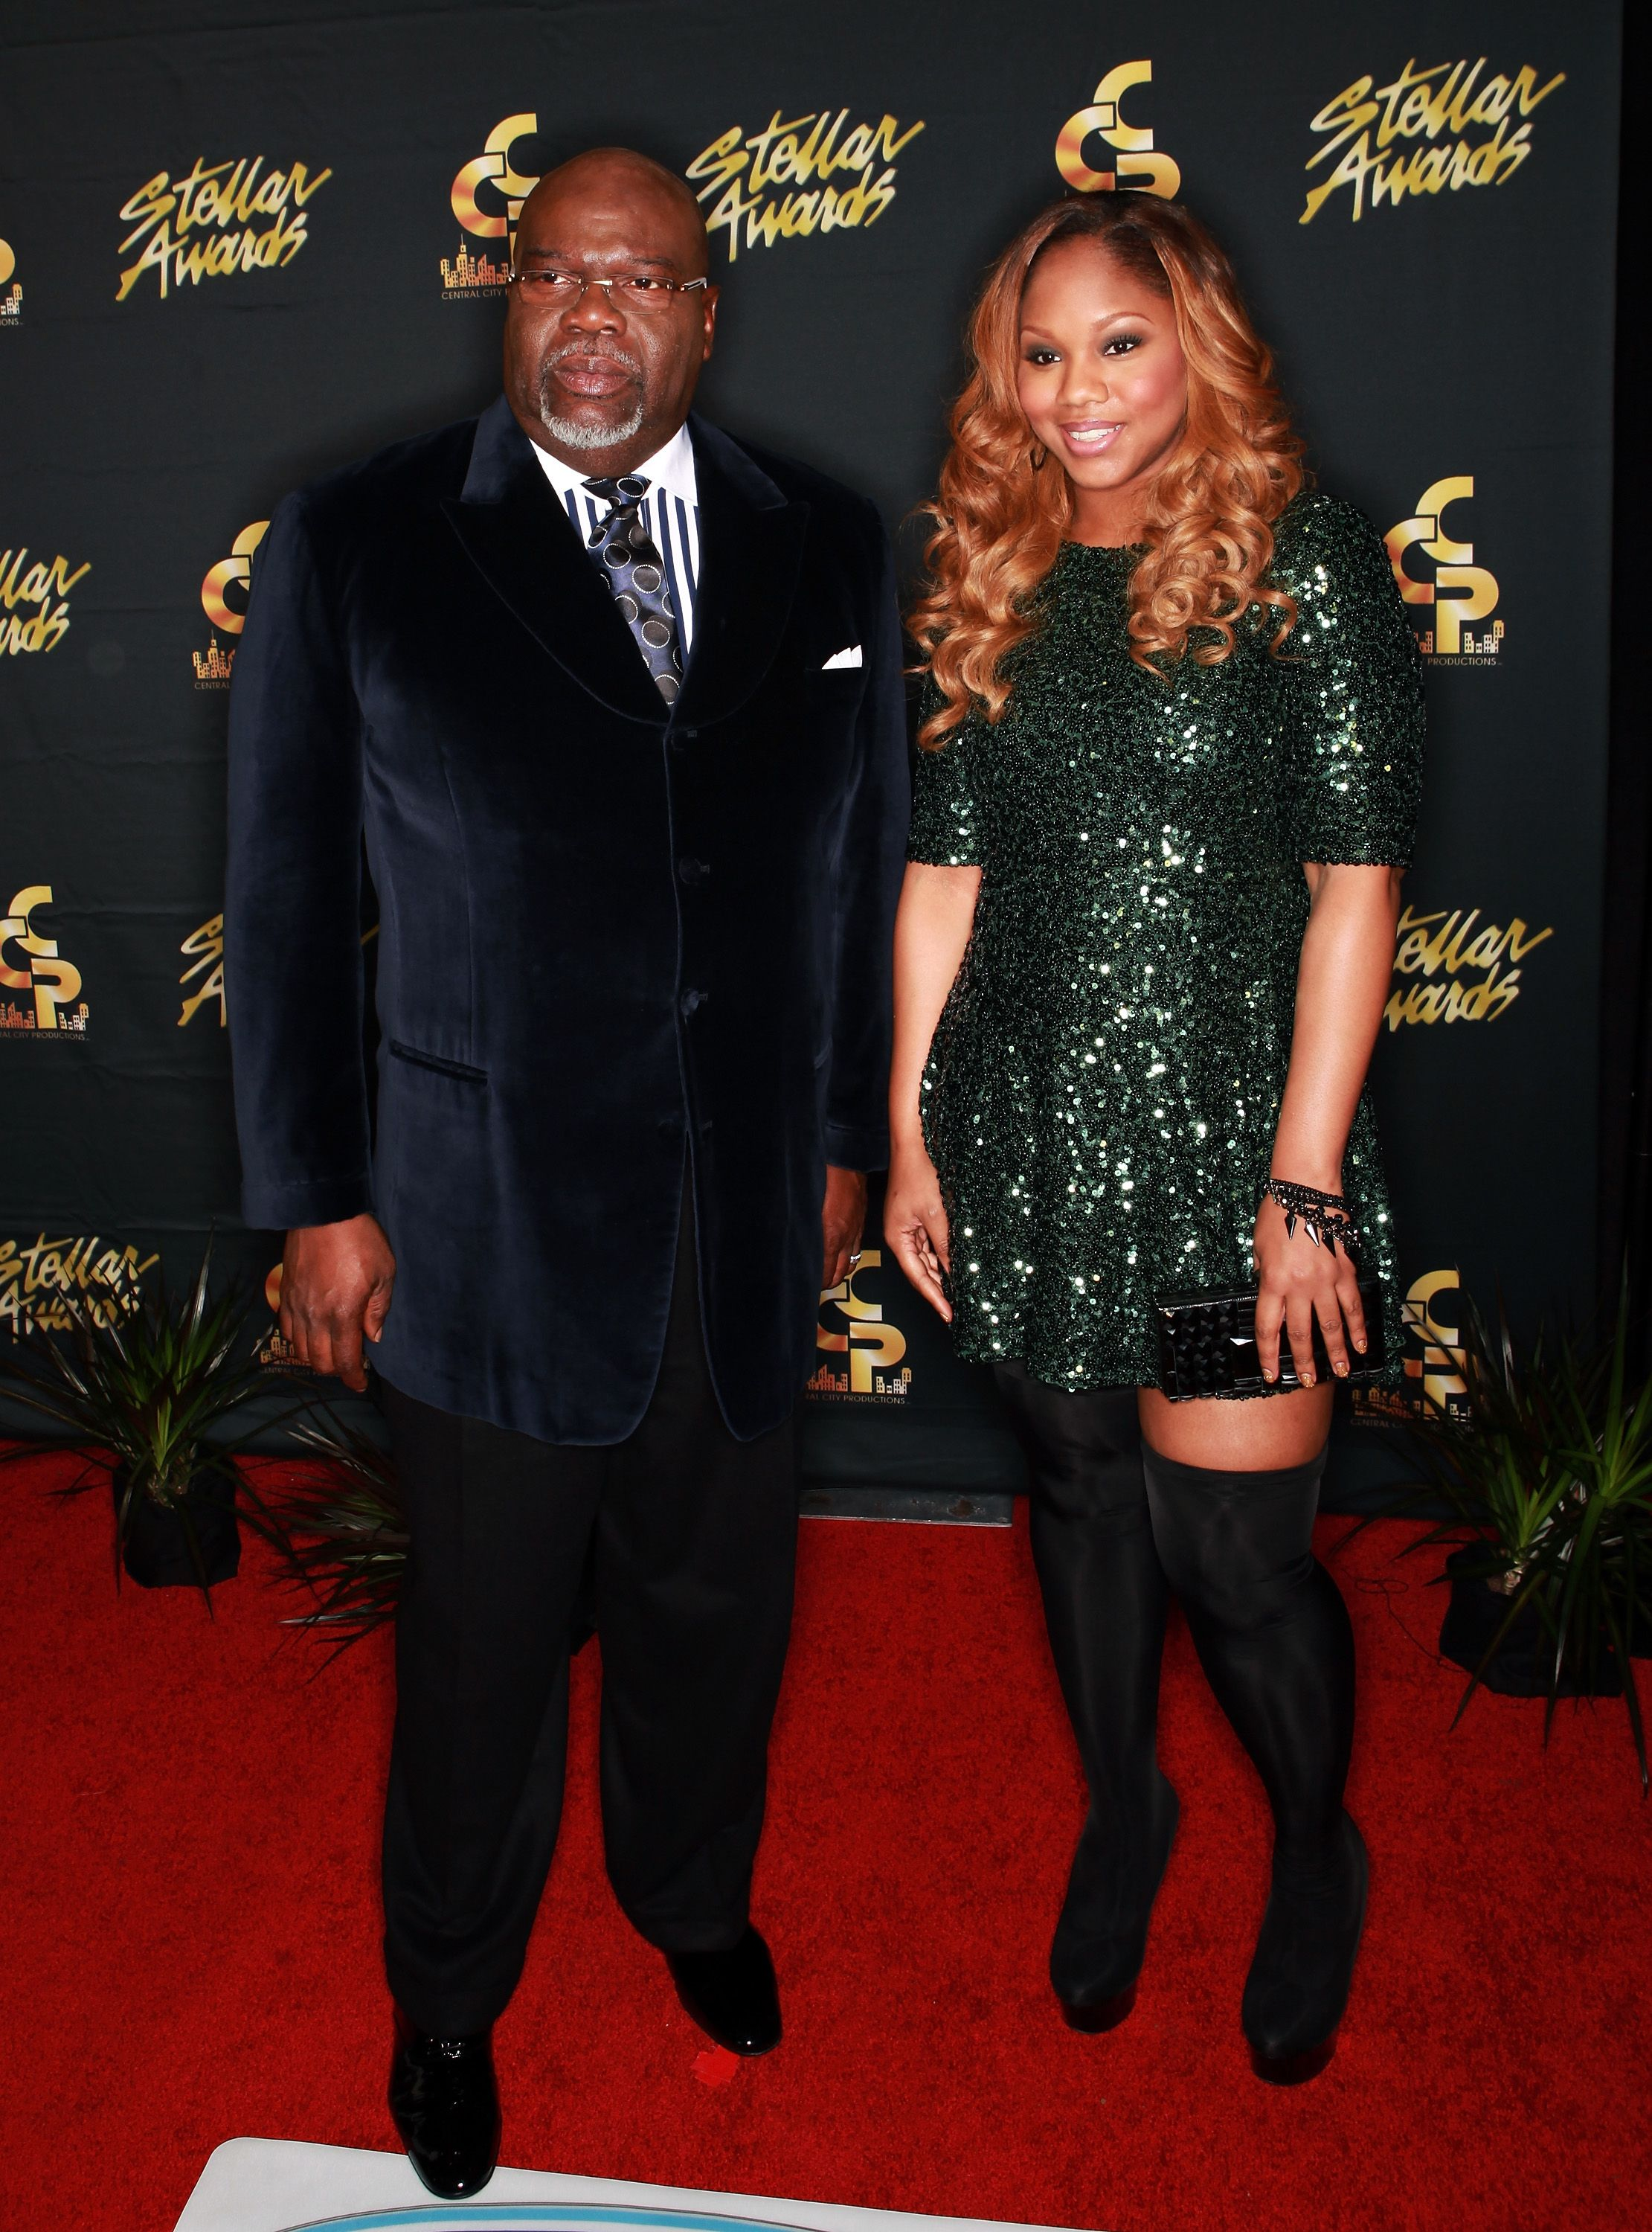 T.D. Jakes and his daughter at the Annual Stellar Awards on January 19, 2013 in Nashville.   Photo: Getty Images